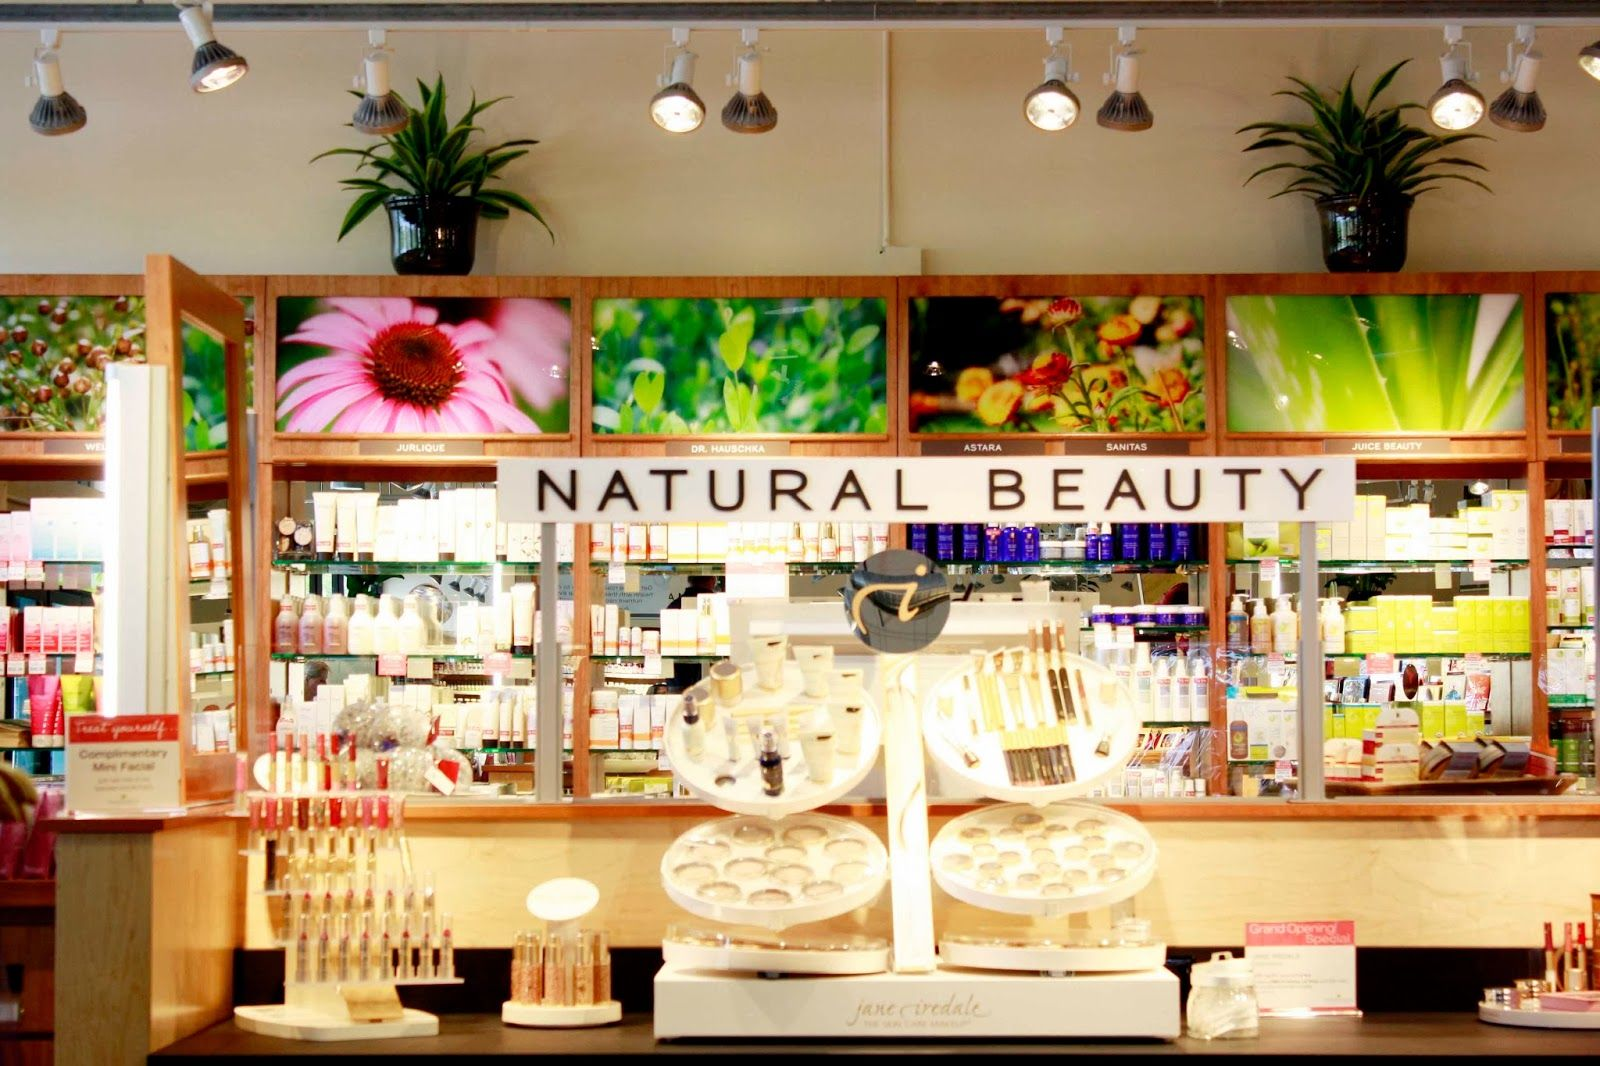 From dailydisguise.com: I'm not sure why this hasn't become mainstream yet, but a pharmacy that includes a beauty bar offering full service beauty and spa treatments using eco-friendly, salon-quality products? Sign me right up!     For the lucky readers that are located in the Bay Area, Pharmaca Integrative Pharmacy has opened two brand new Natural Beauty Bars in their Menlo Park and Oakland locations.